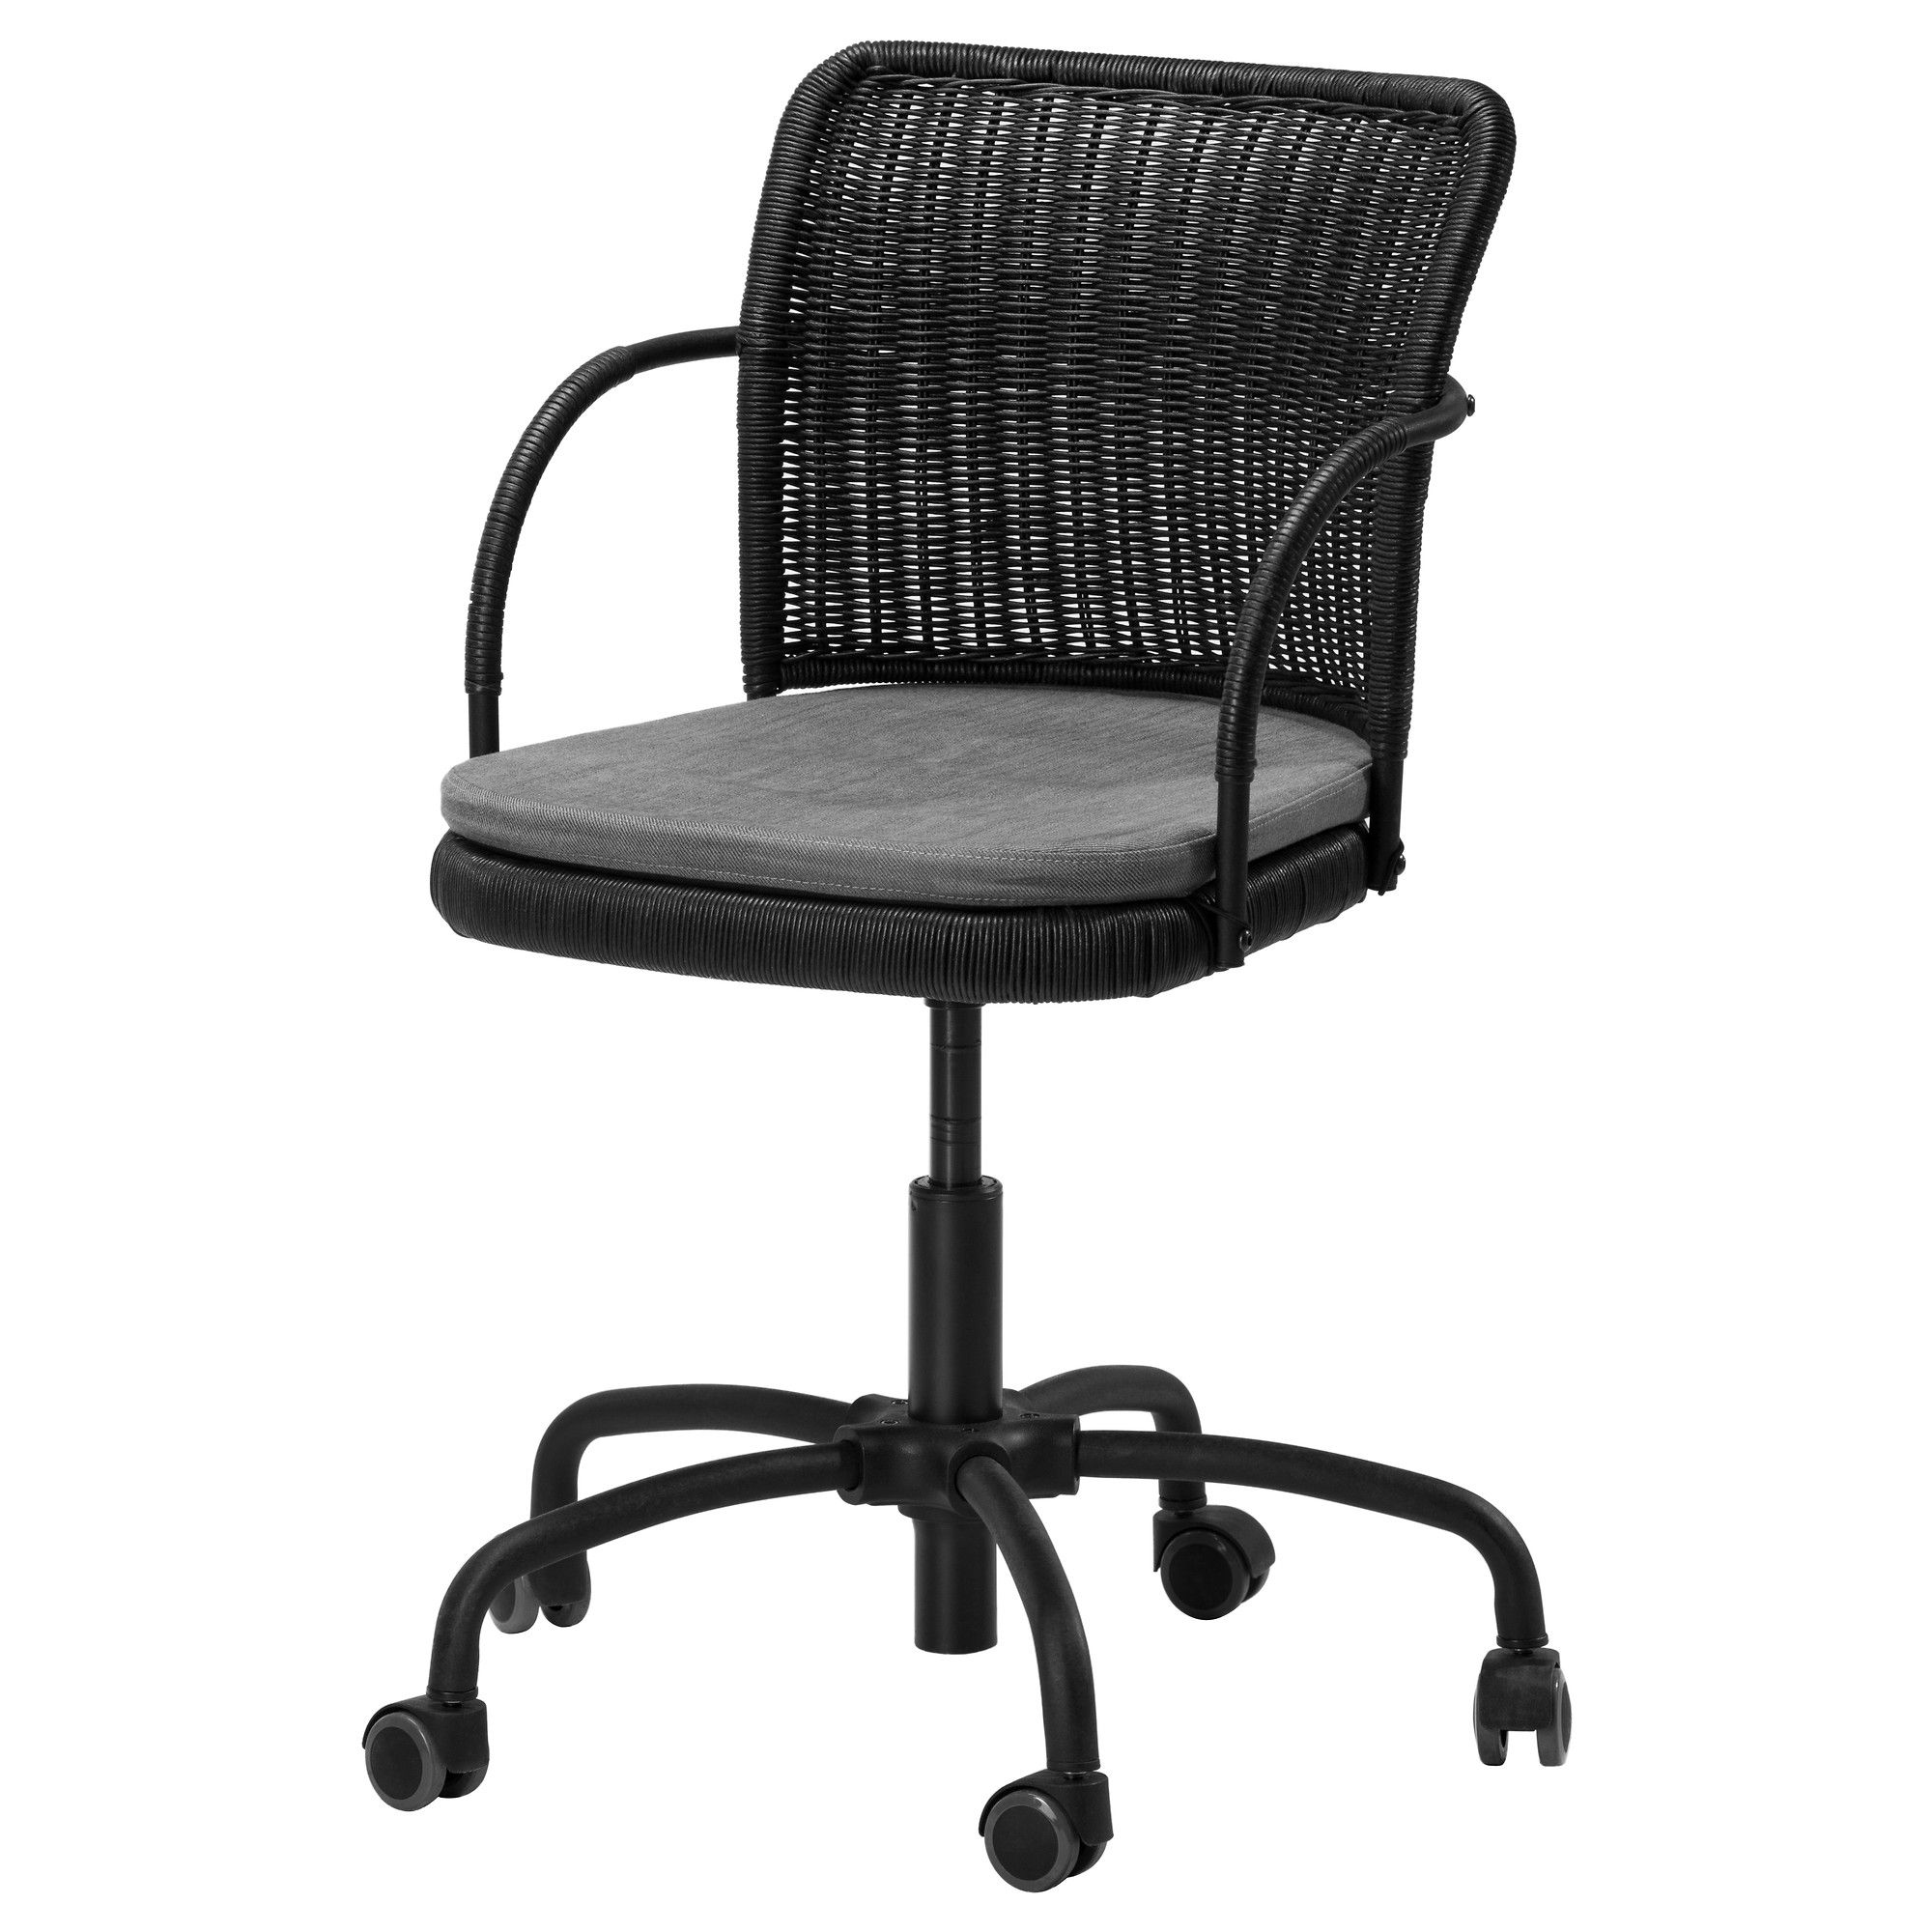 GREGOR Swivel Chair